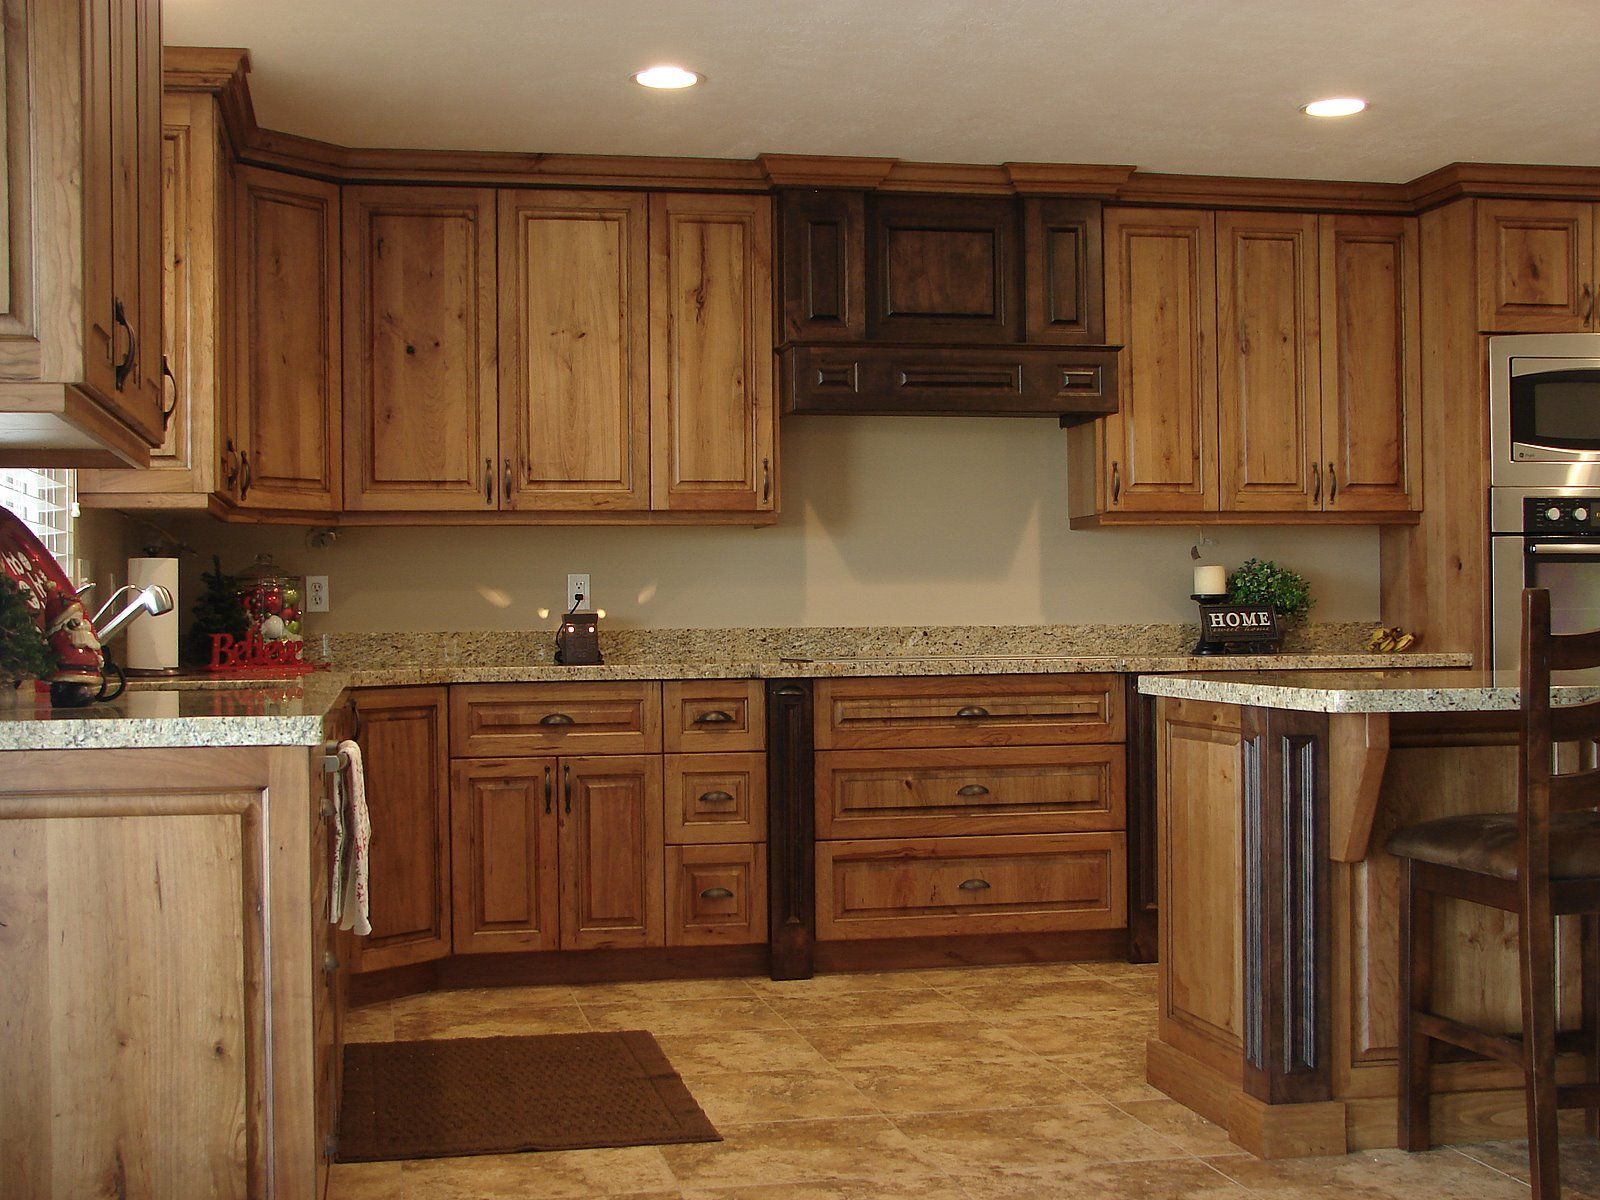 kitchen cabinets rustic style best 20 cherry kitchen cabinets designs ideas with photo 6369